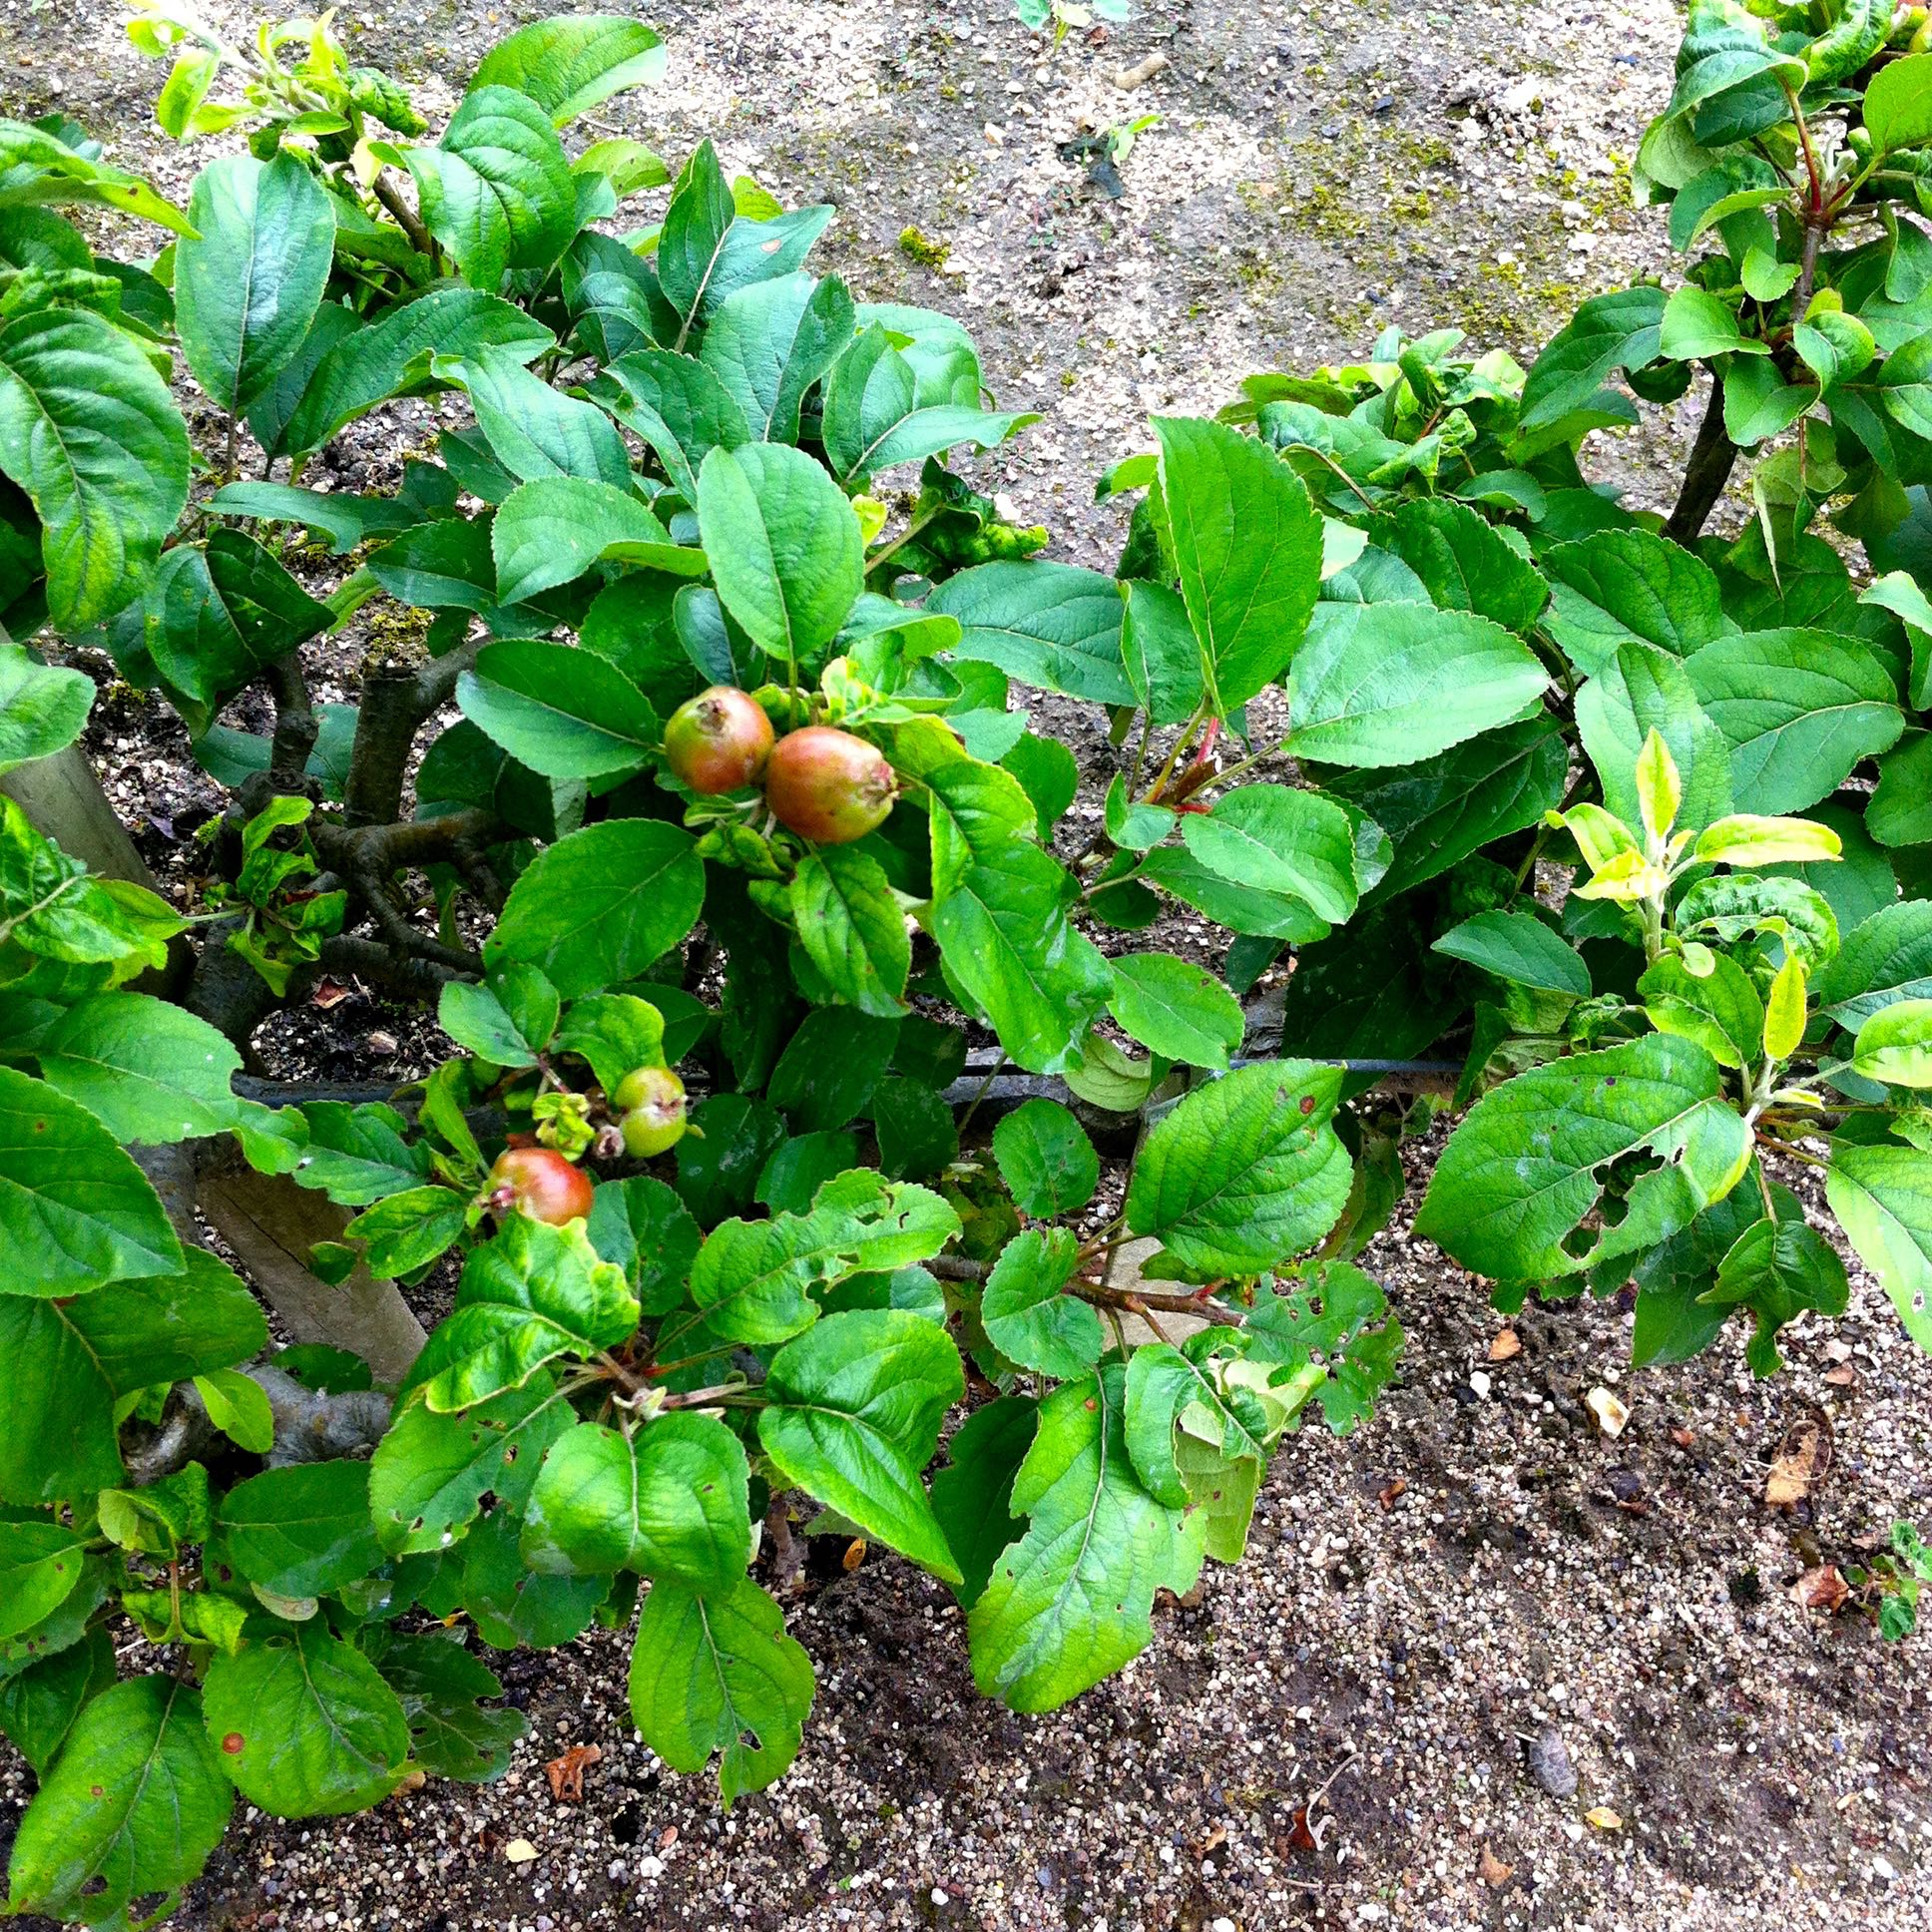 looking down on the miniature fruit trees bordering the vegetable and flower beds at chateau de chenonceau